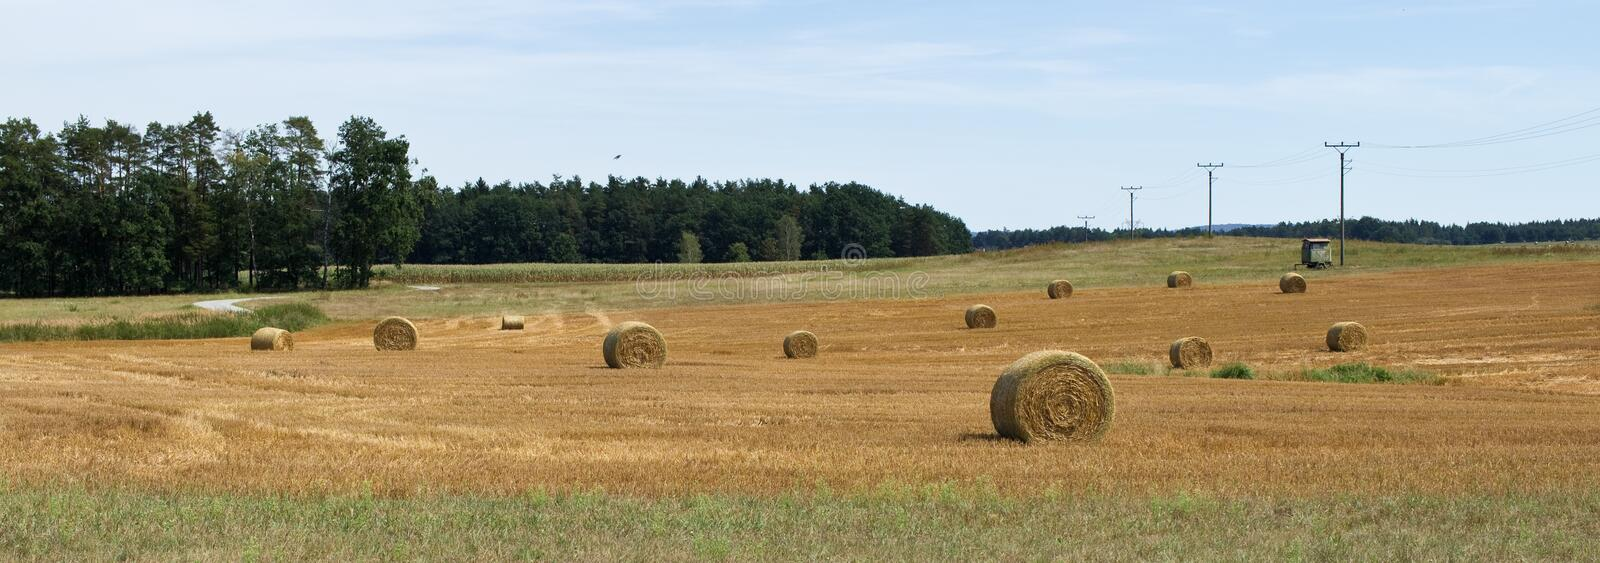 Summer rural landscpae. Golden bales with hay. Forest. Electricity pylons. Electricity poles. Electricity posts royalty free stock photos